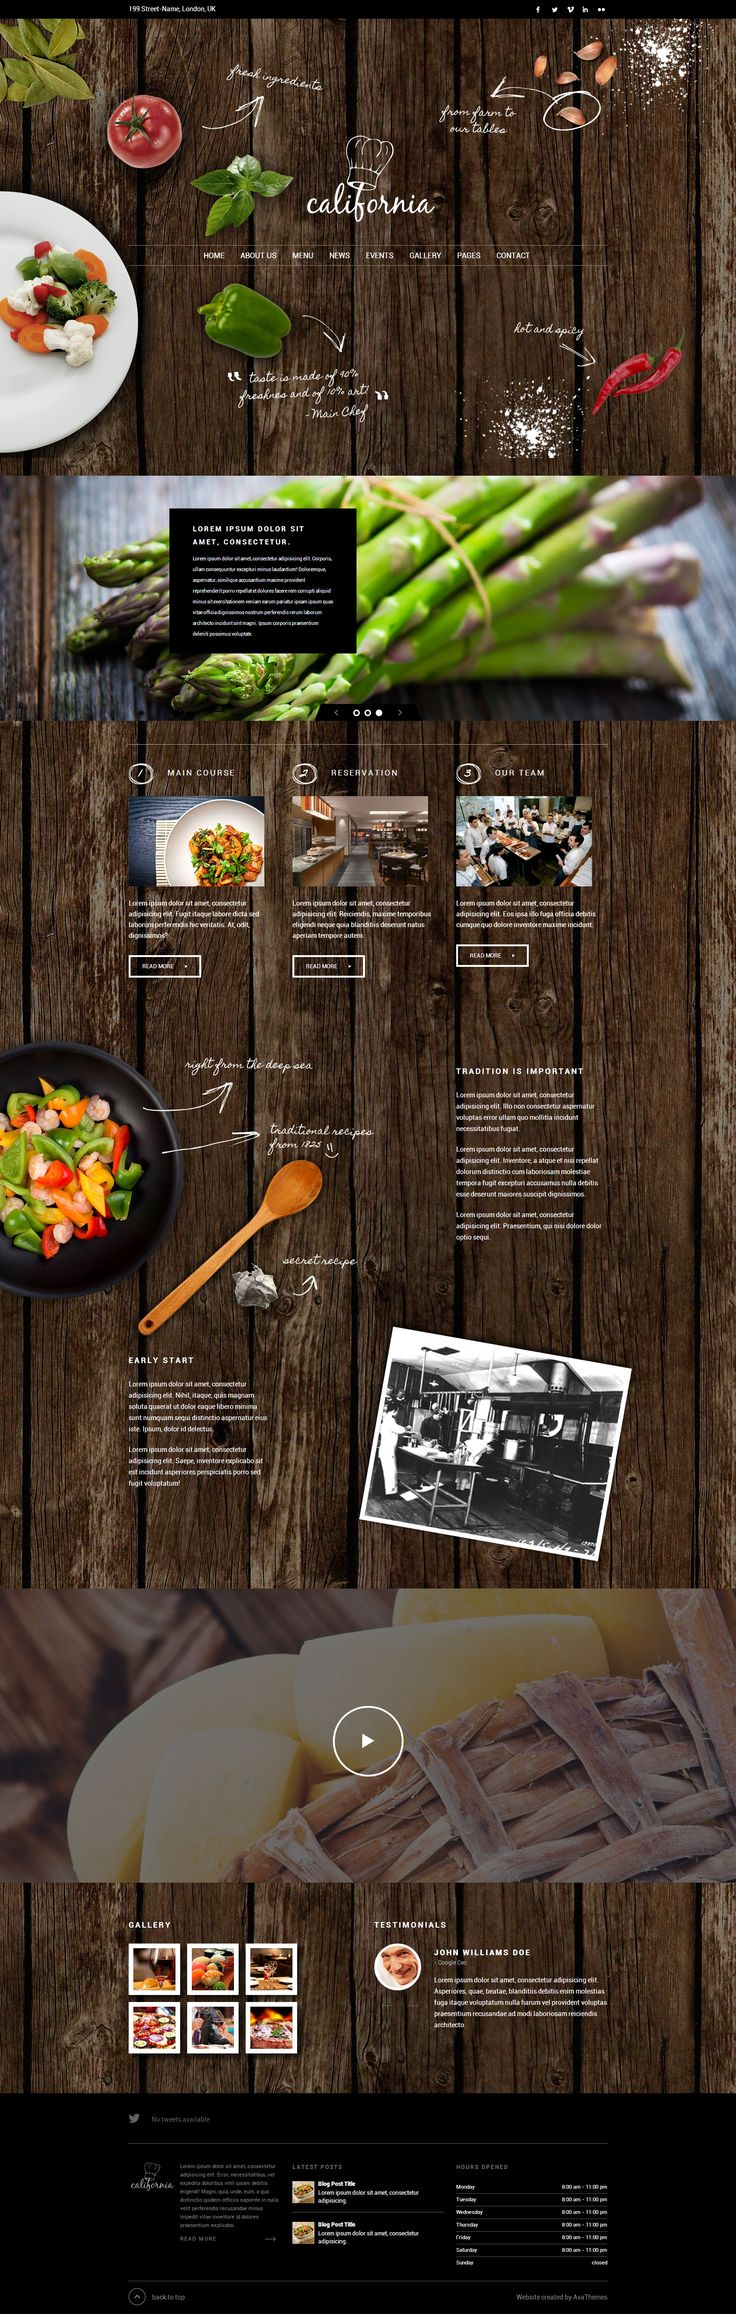 California - Restaurant Hotel Coffee Bar Website #web #design #restaurant